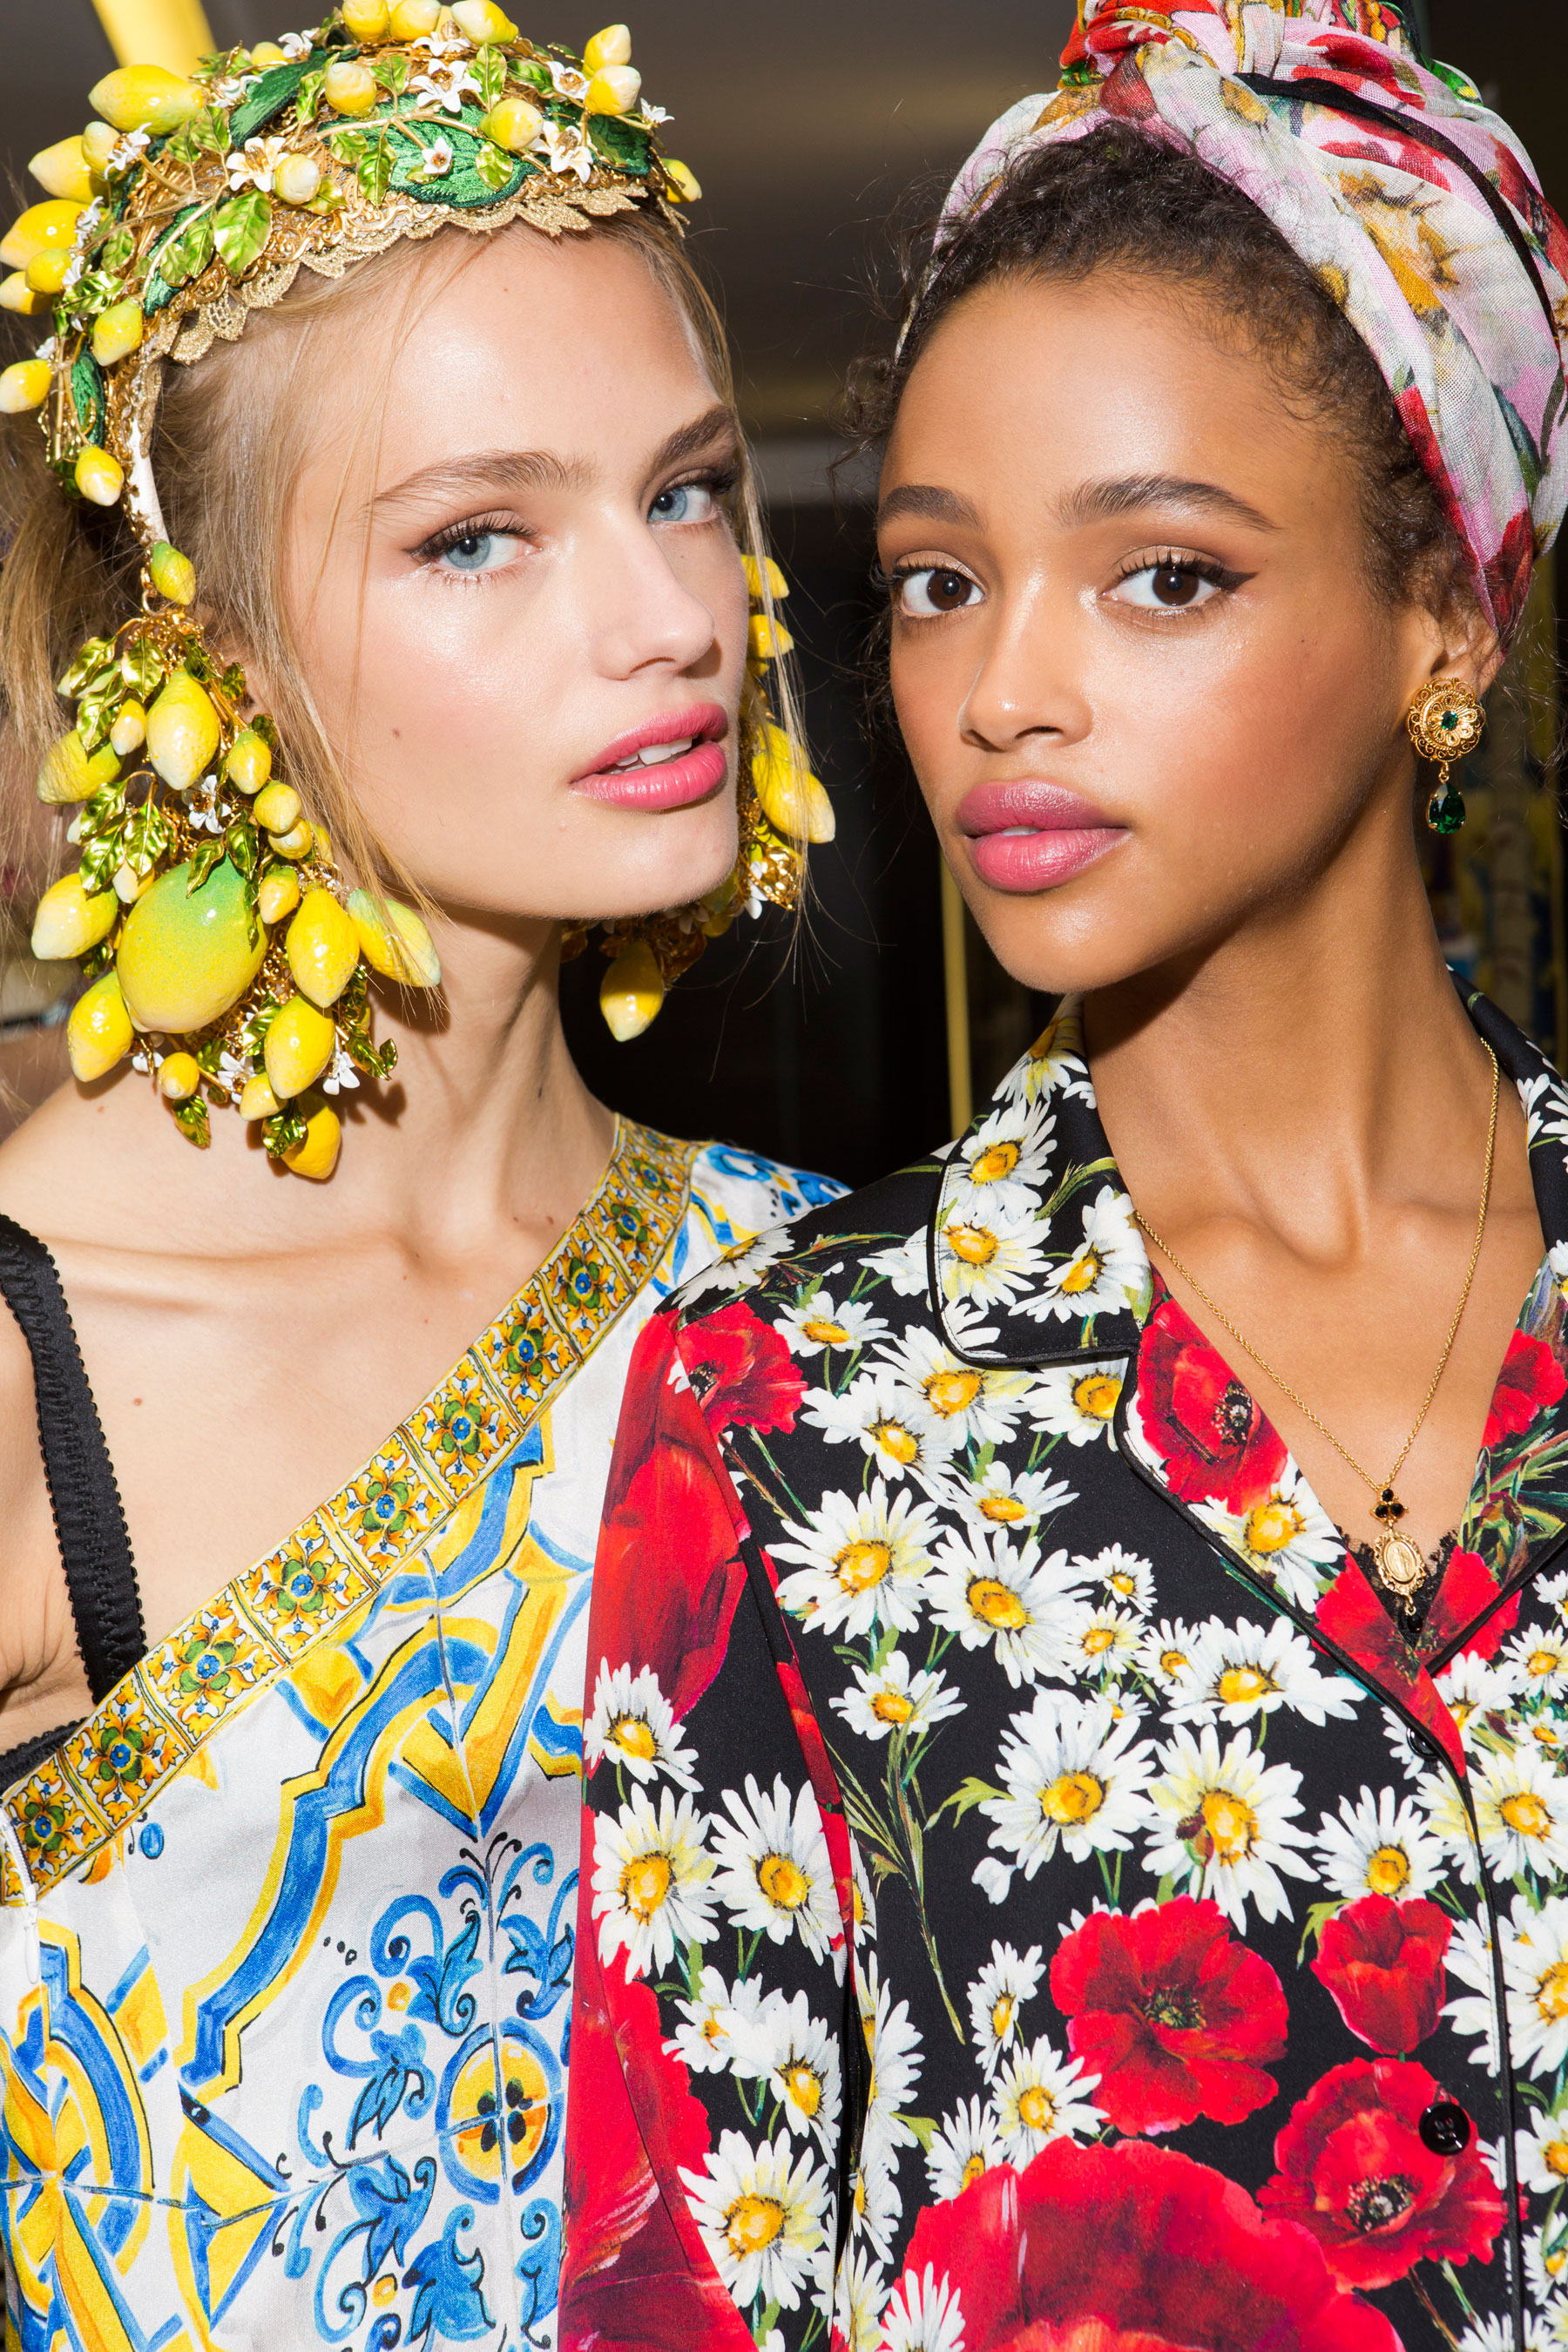 Dolce-and-Gabanna-backstage-beauty-spring-2016-fashion-show-the-impression-109